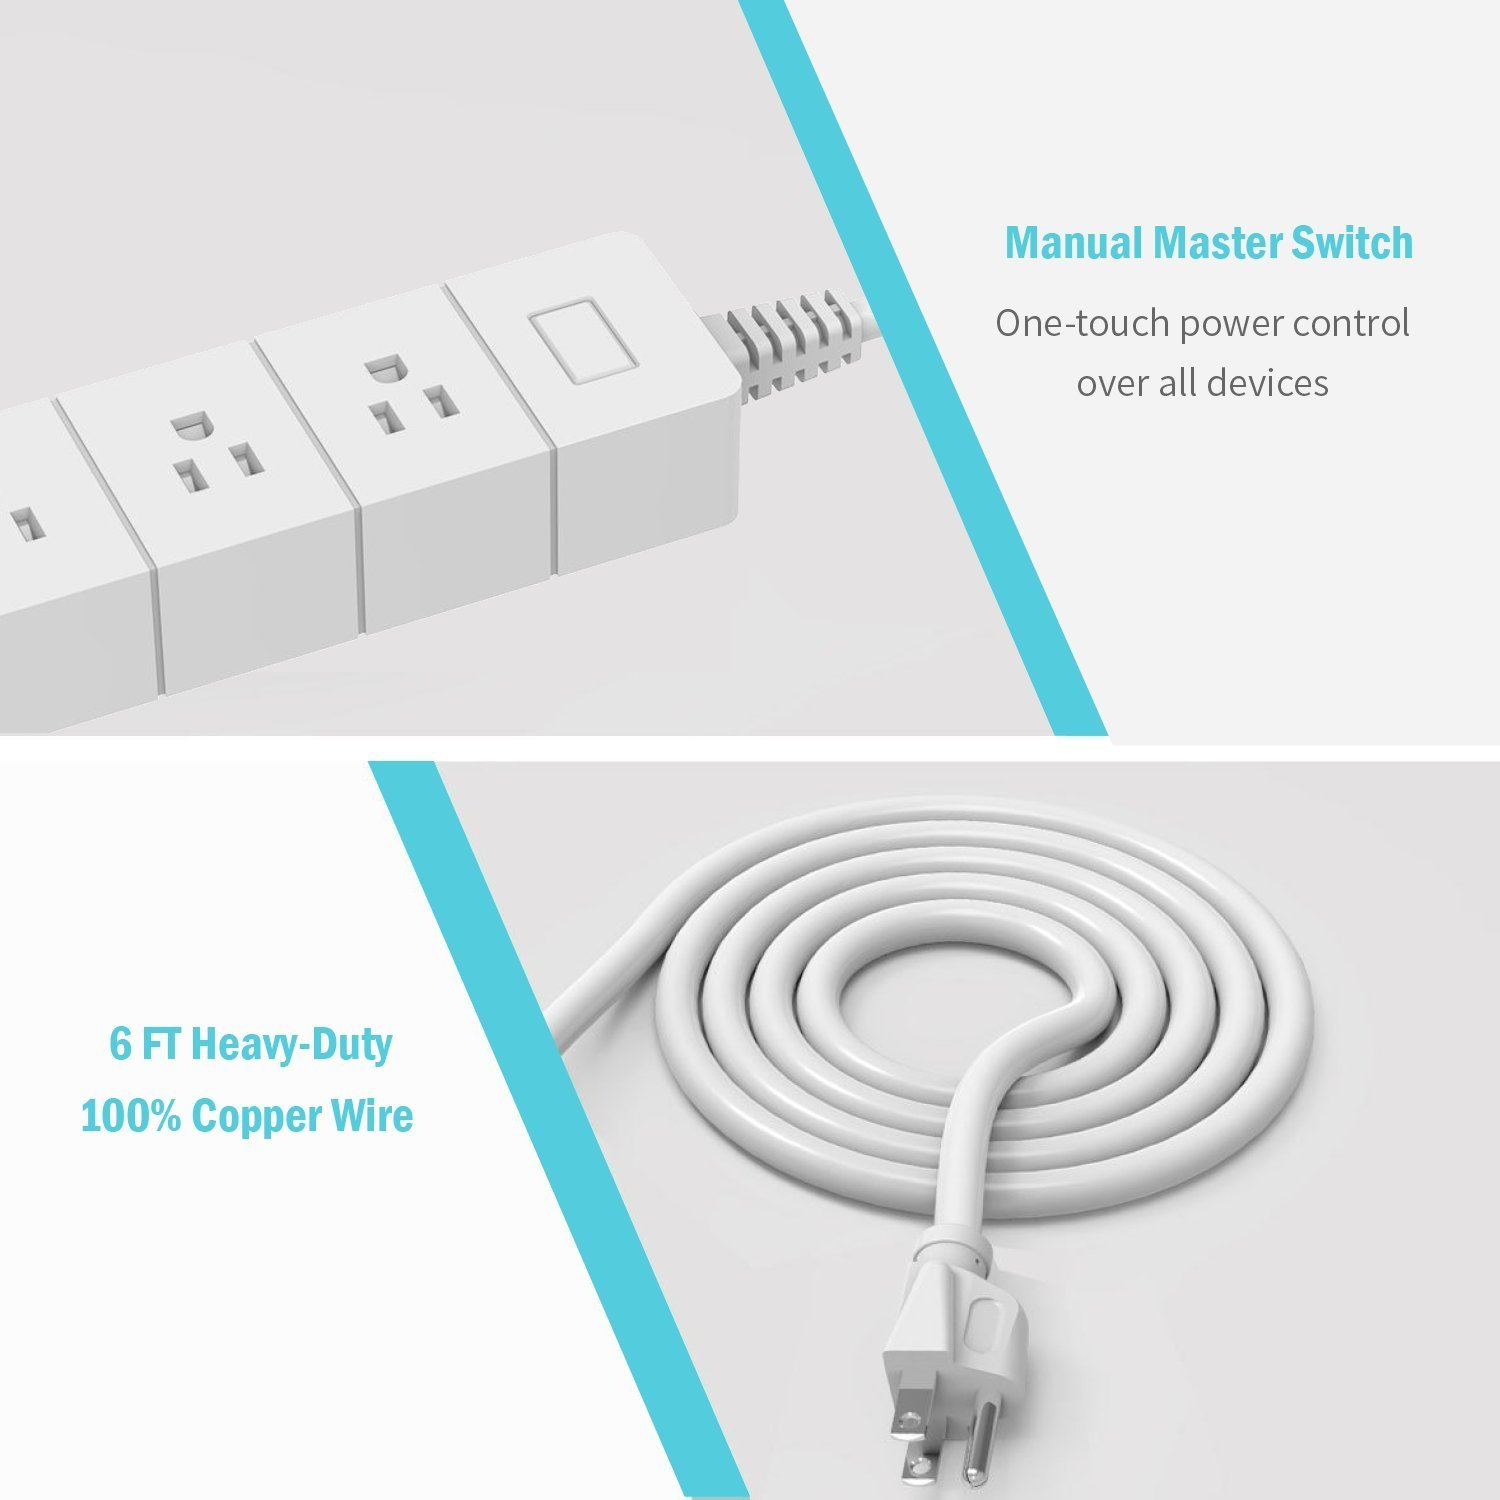 HOT-Wi-Fi Smart Power Strip Support Amazon Alexa, Google Assistant & IFTTT, APP Remote Control, With 3 Smart AC Outlet